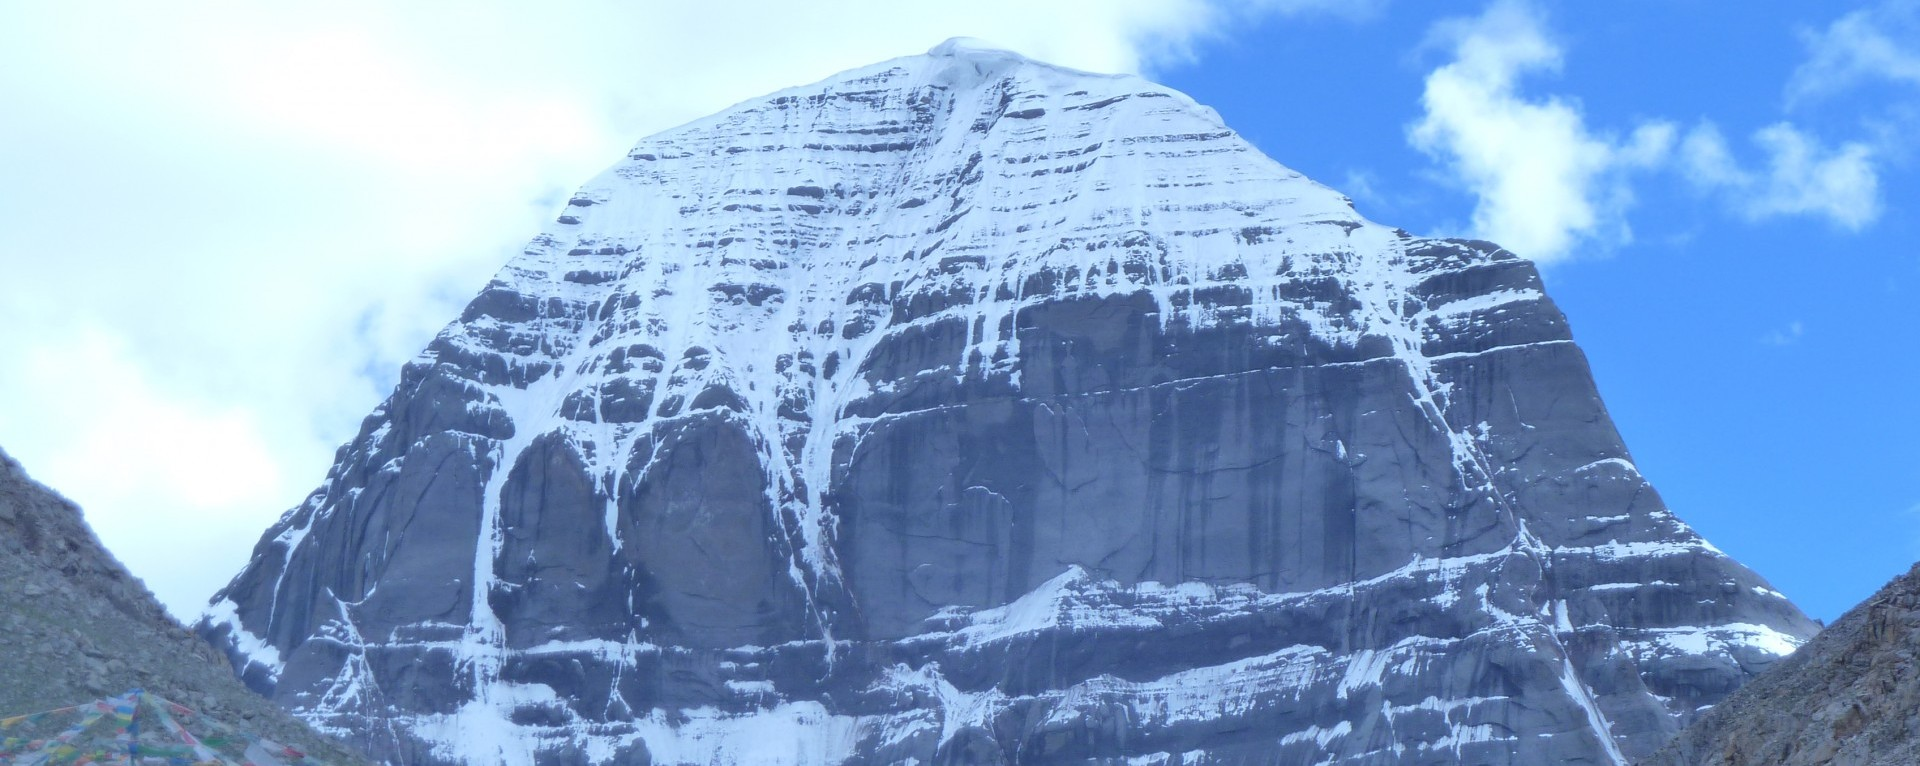 Mt. Kailash from the north side.